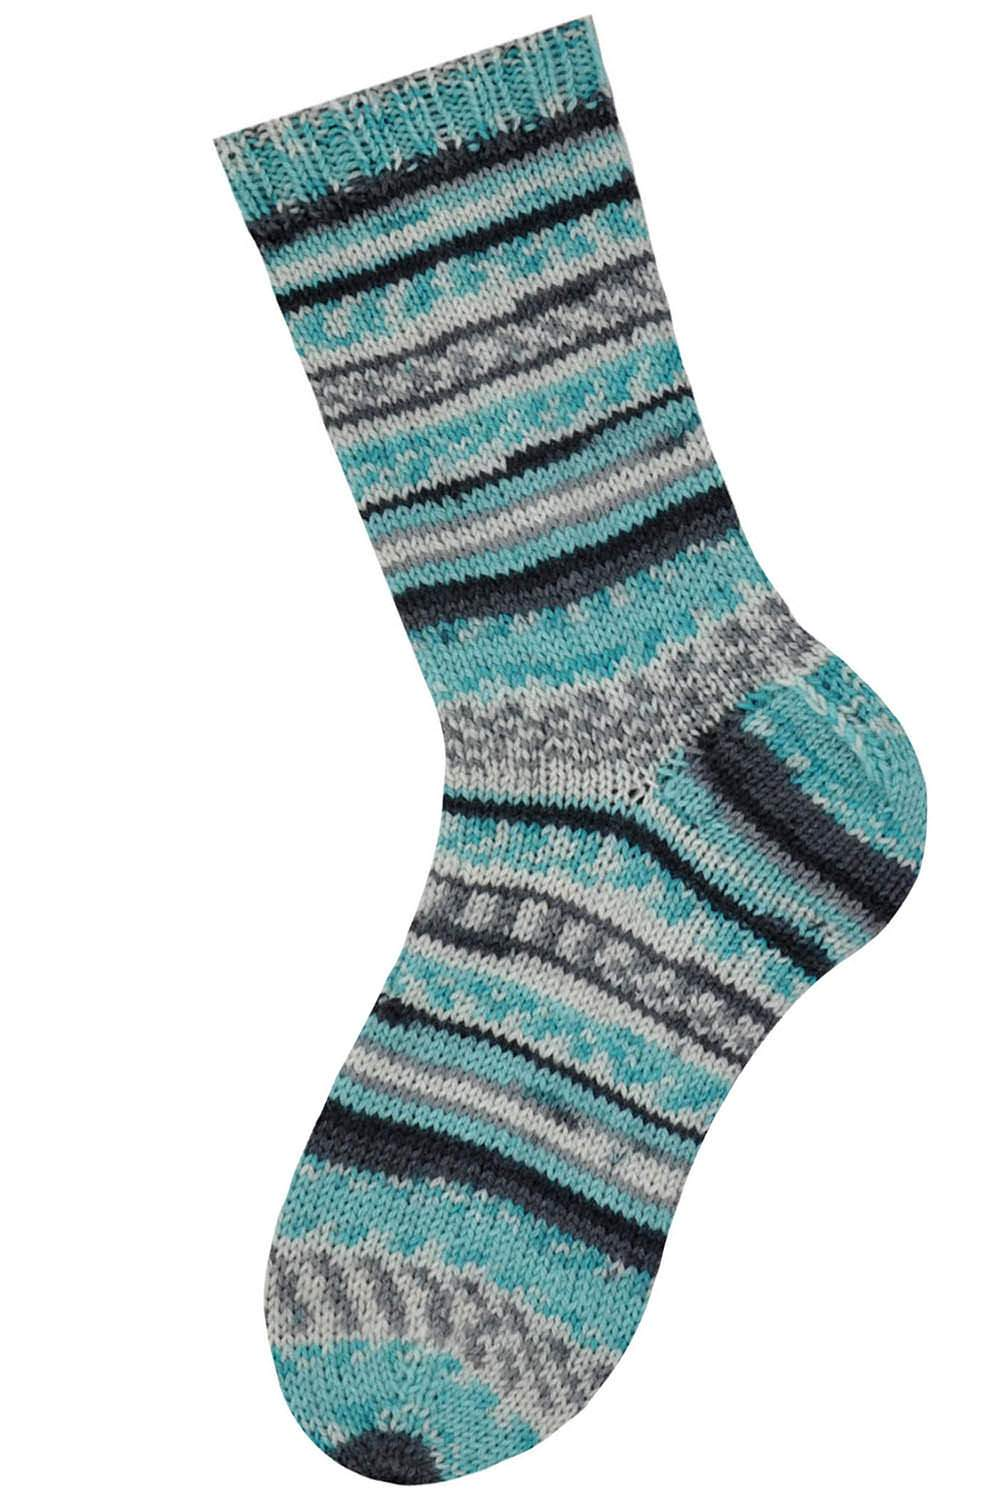 Wacki Saki Simple sock Pattern Wisdom Yarns